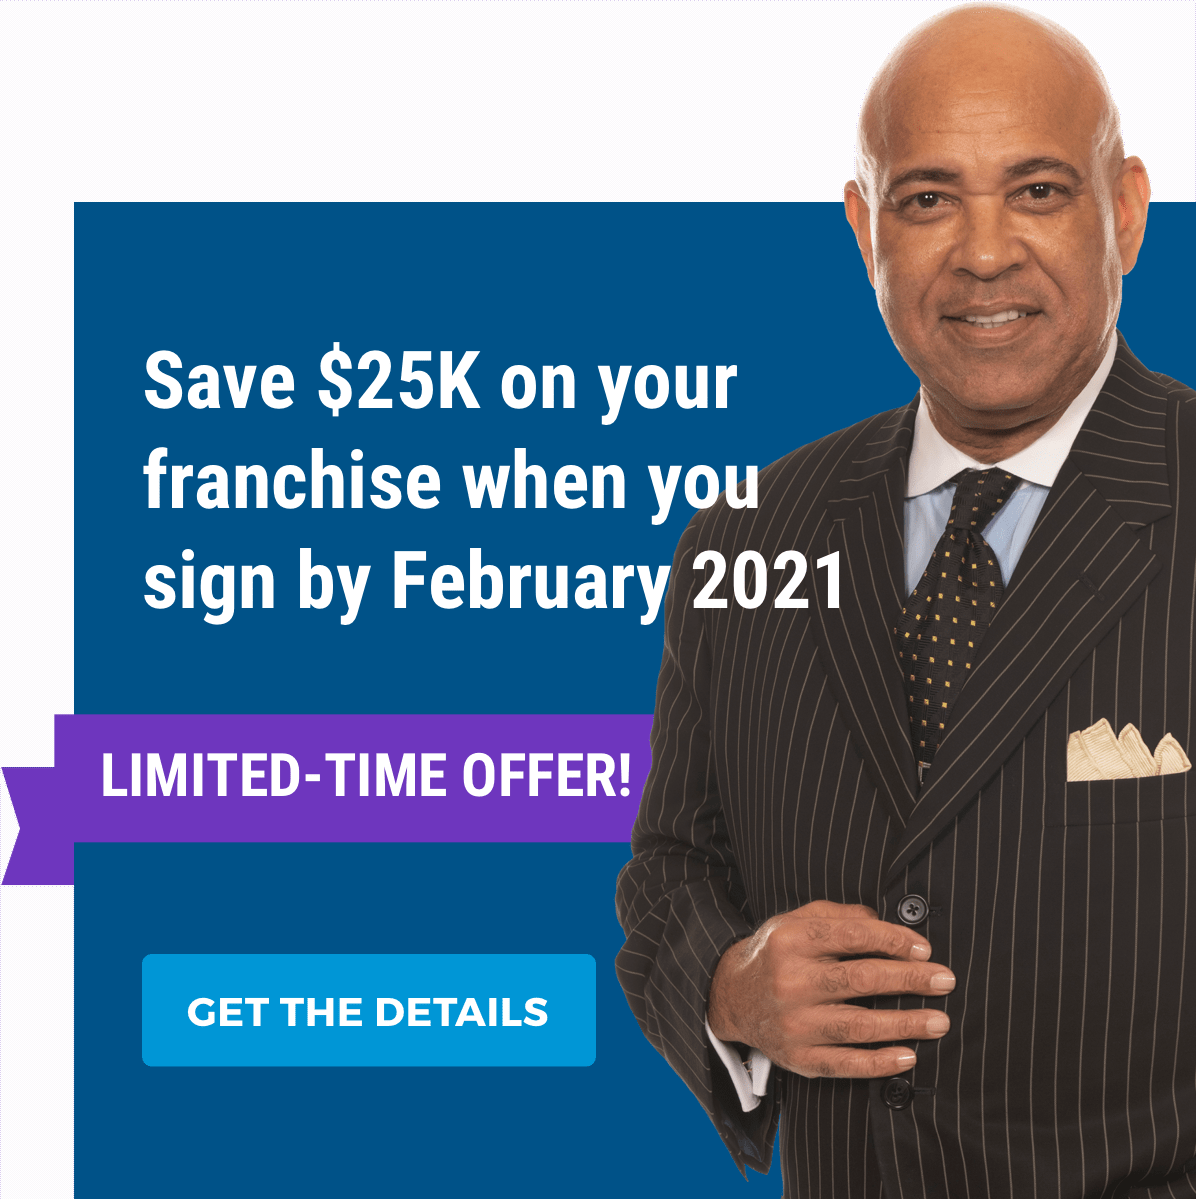 Save $25K on your franchise when you sign by February 2021. Limited-time offer! Get the Details >